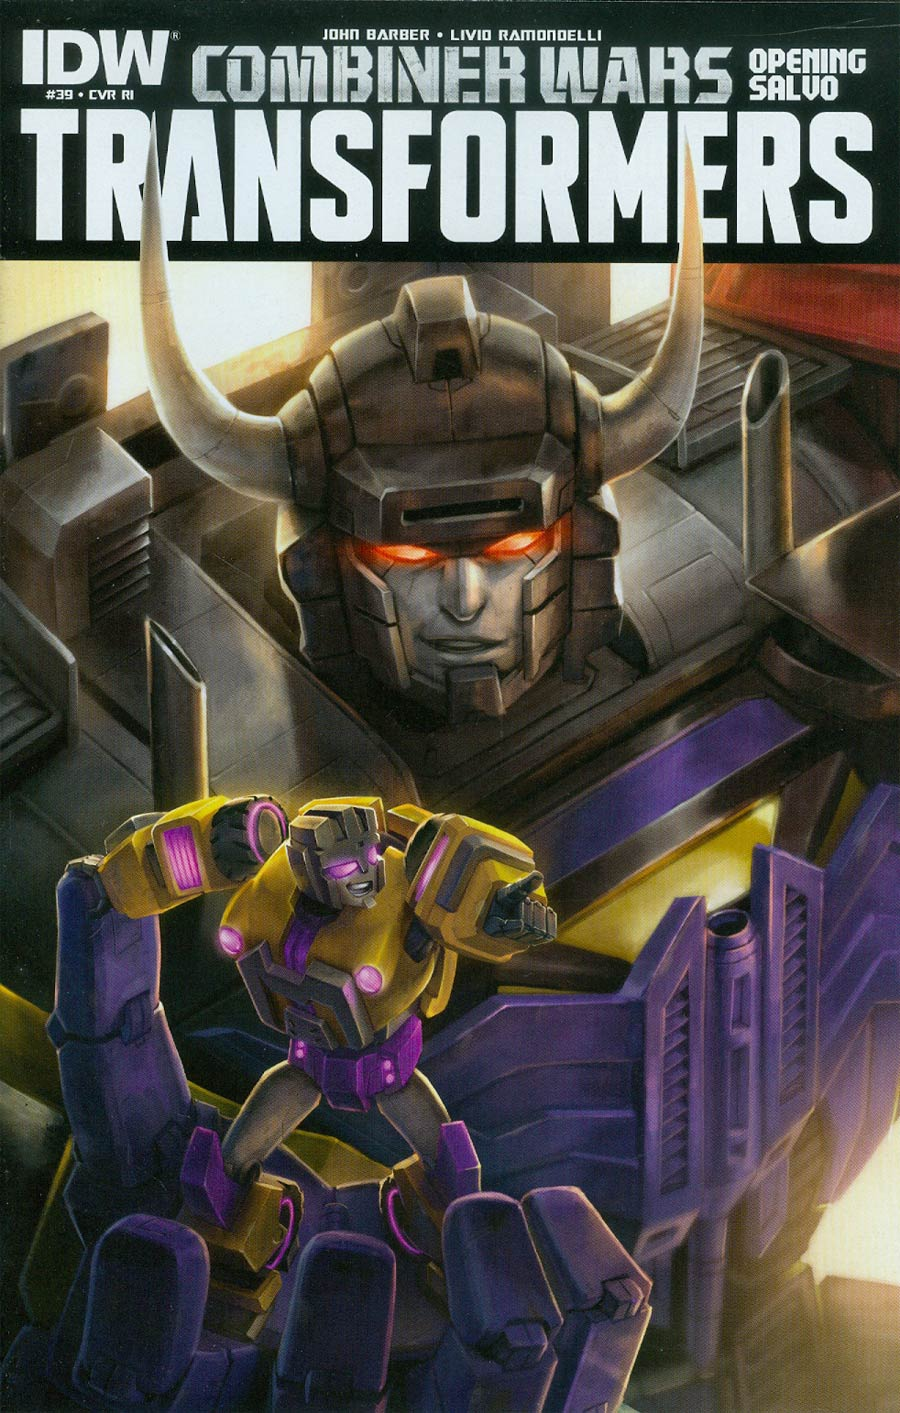 Transformers Vol 3 #39 Cover D Incentive Sara Pitre-Durocher Variant Cover (Combiner Wars Opening Salvo)